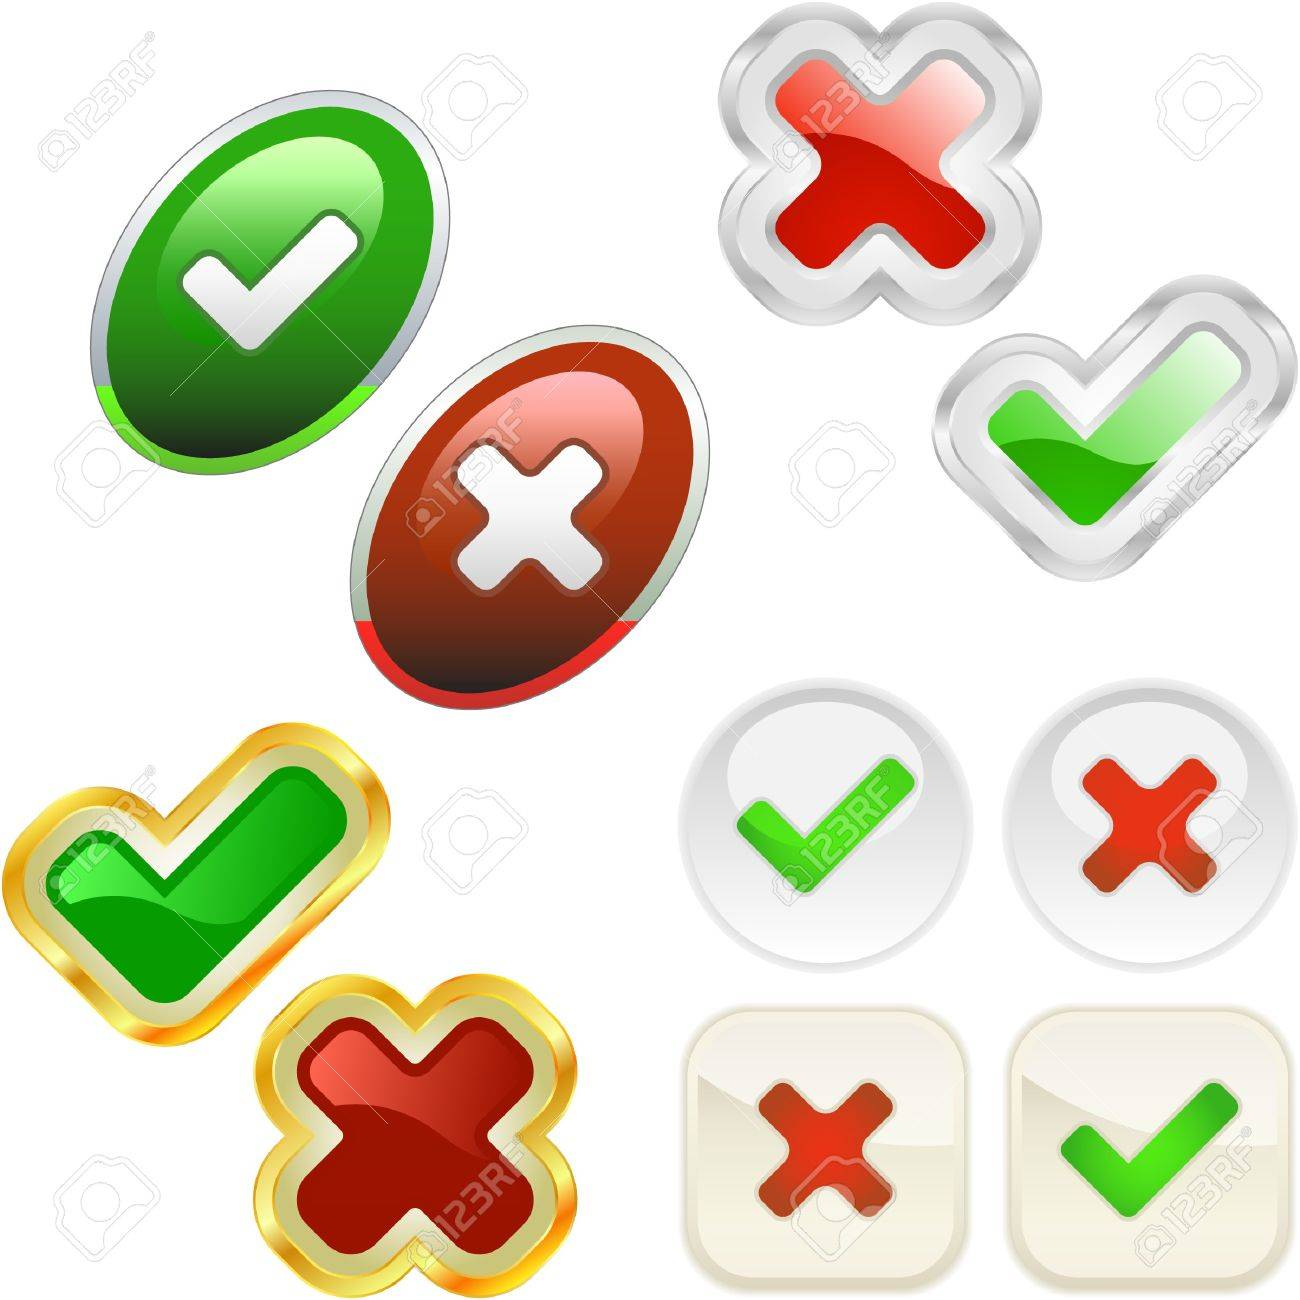 Approved and rejected buttons. - 7243201